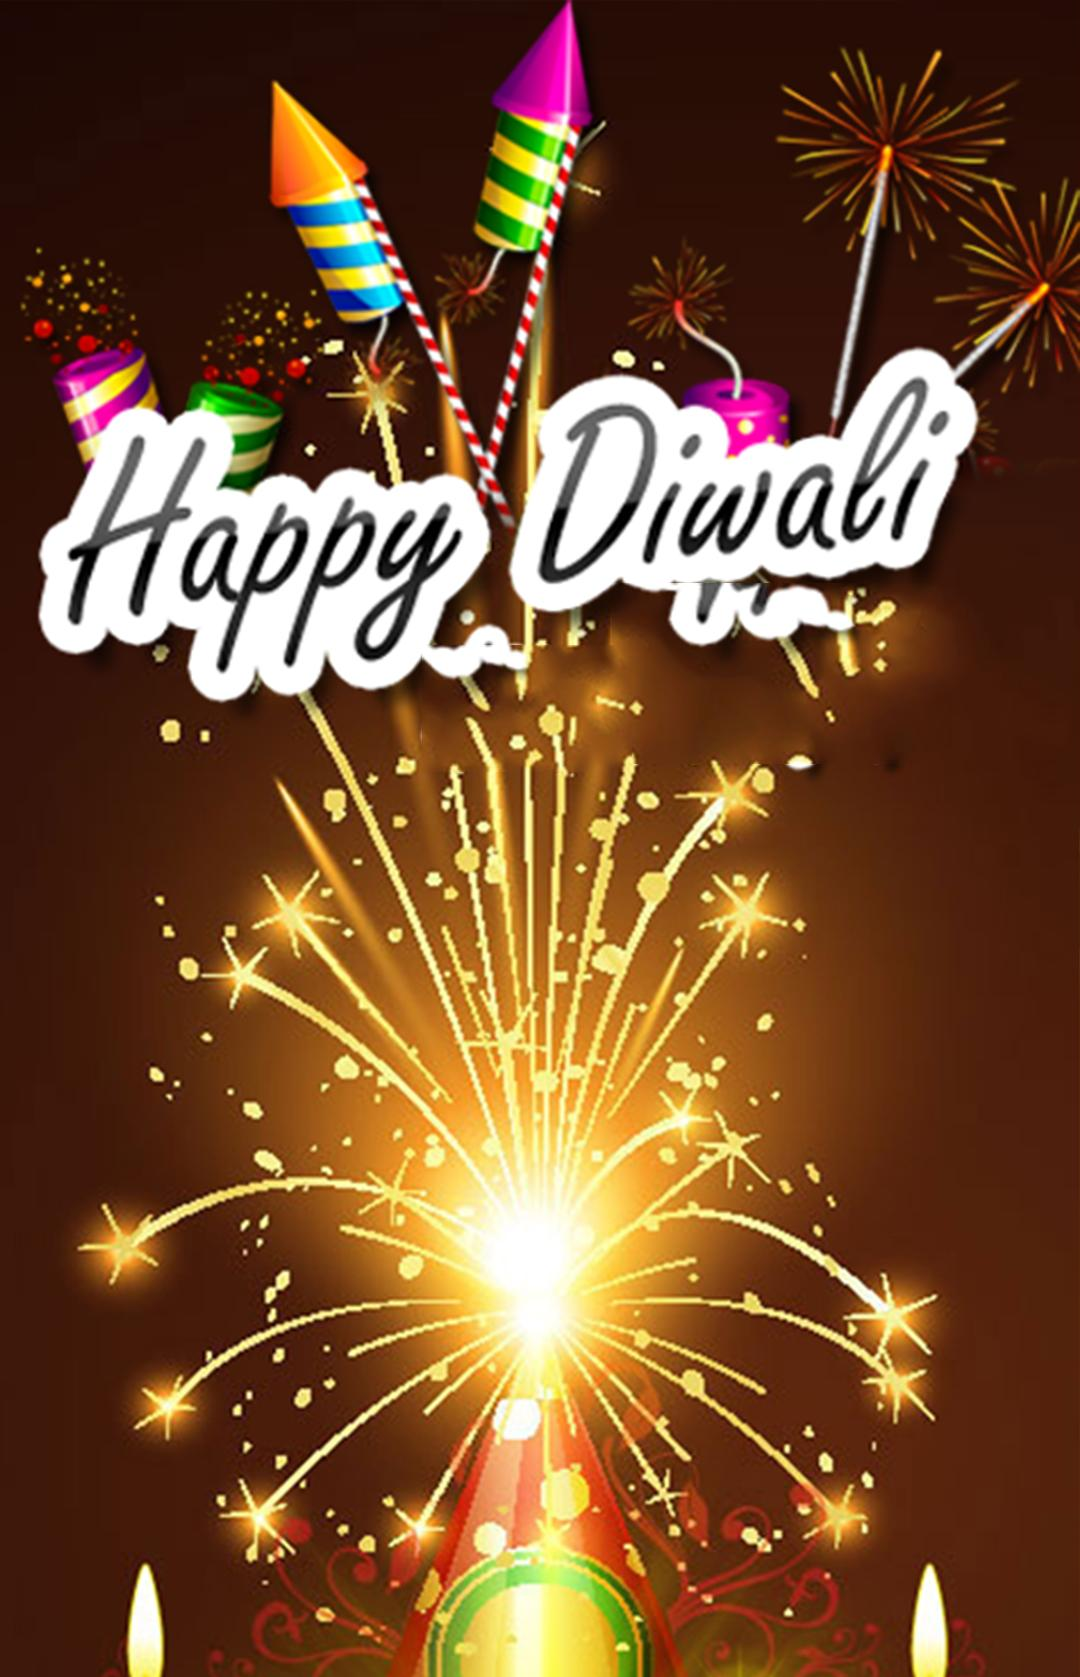 Diwali Hd Wallpaper 2018 For Android Apk Download